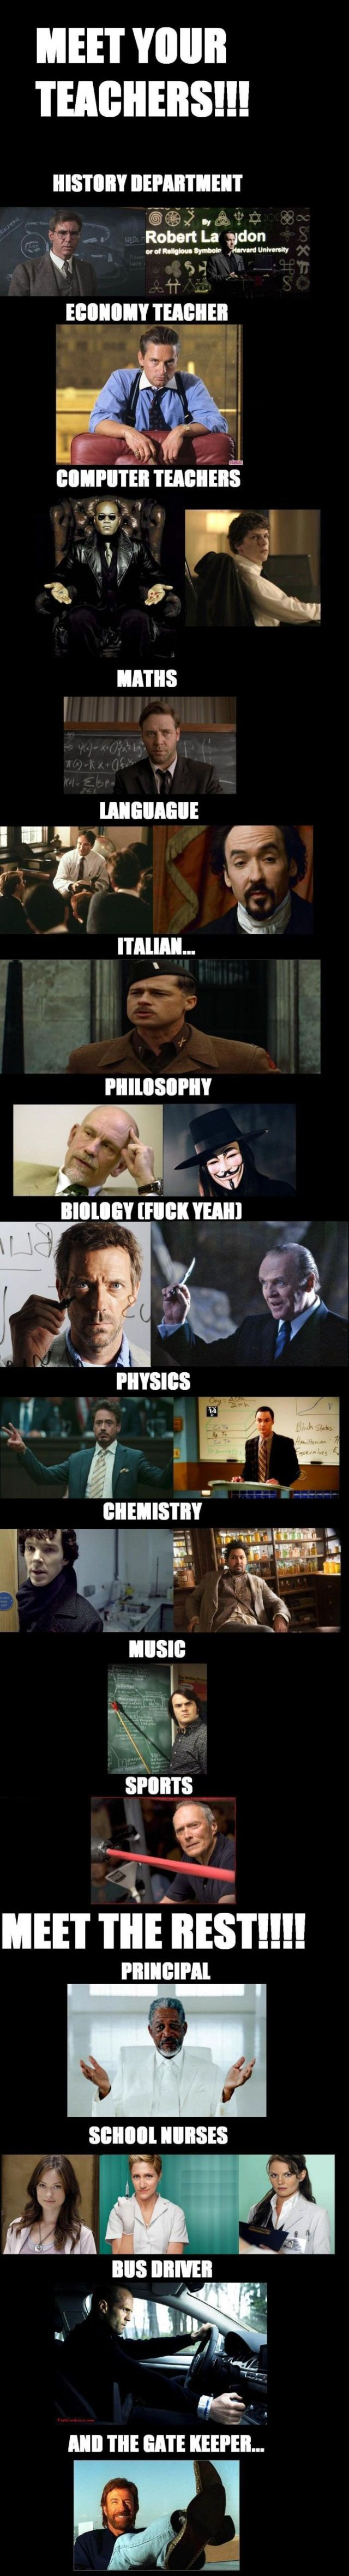 What If Our Teachers Were TV and Movie Characters?